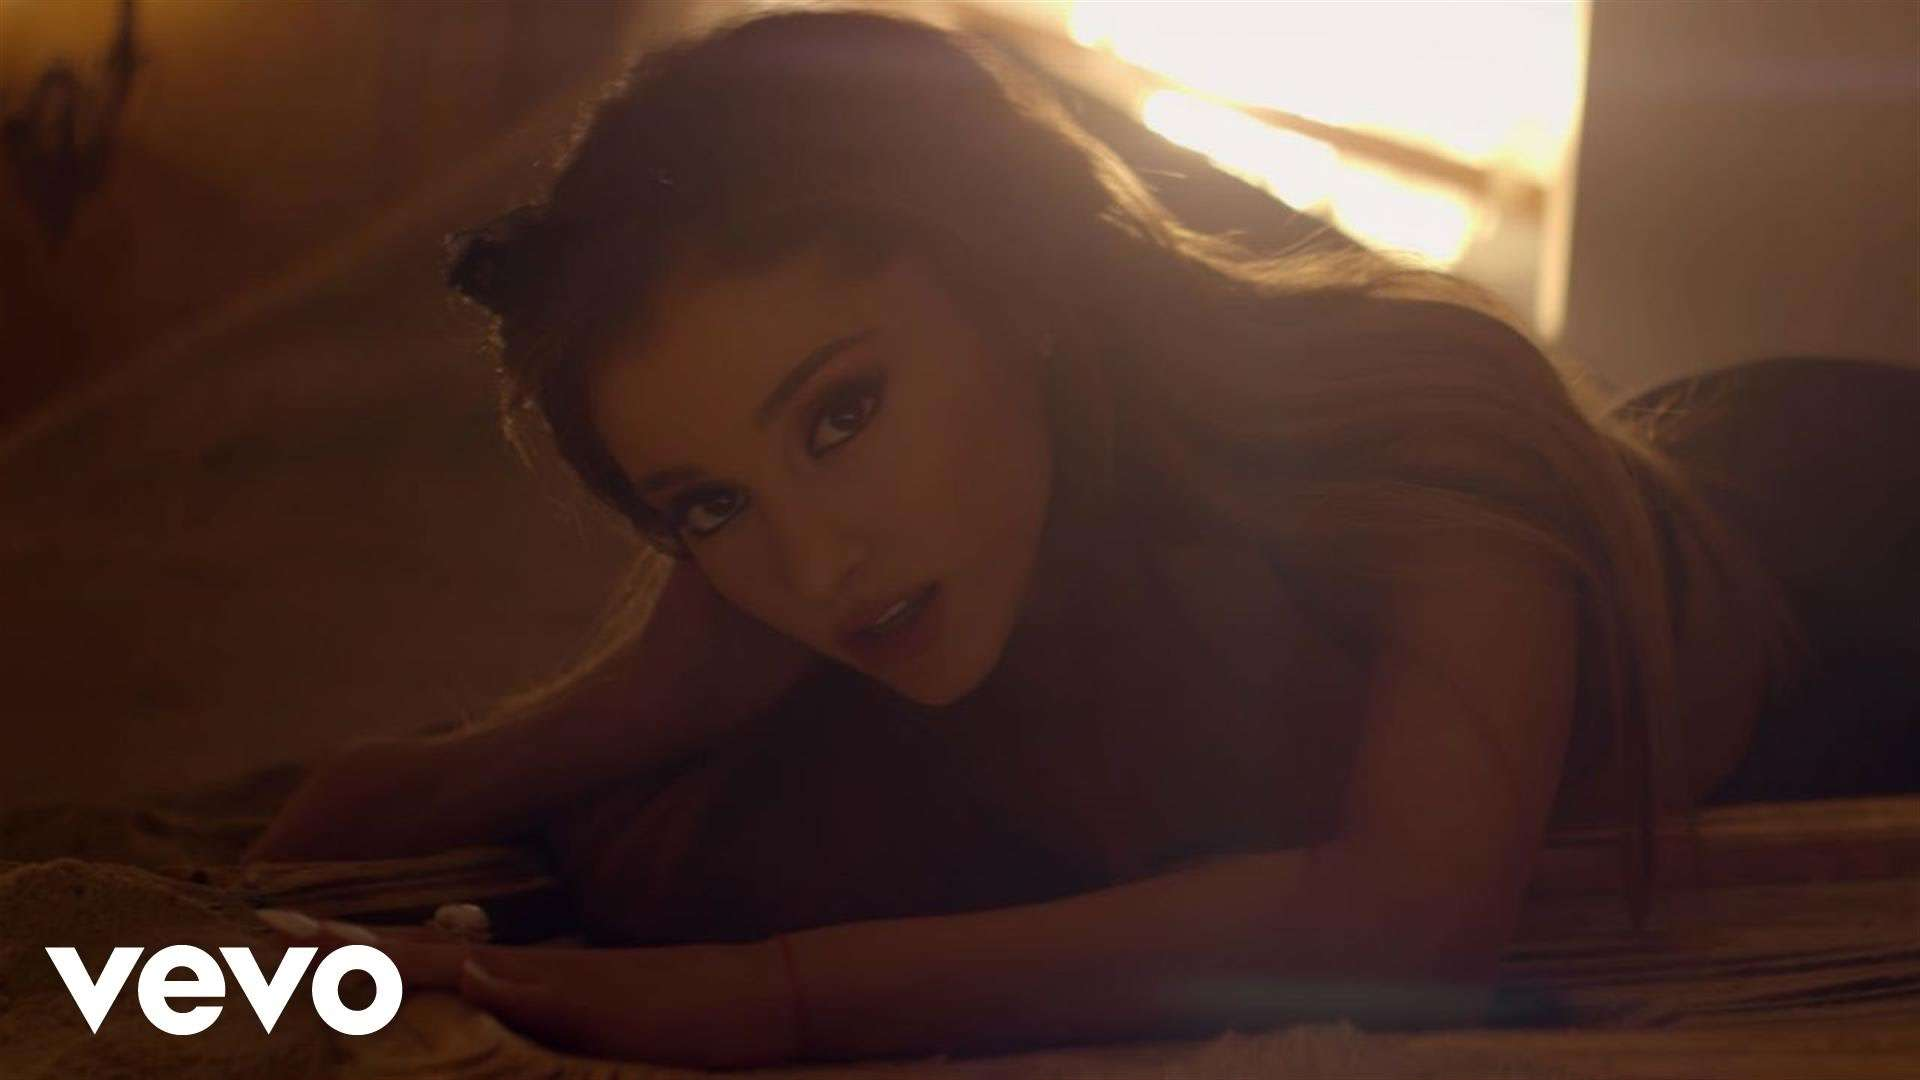 Ariana Grande, The Weeknd - Love Me Harder - YouTube